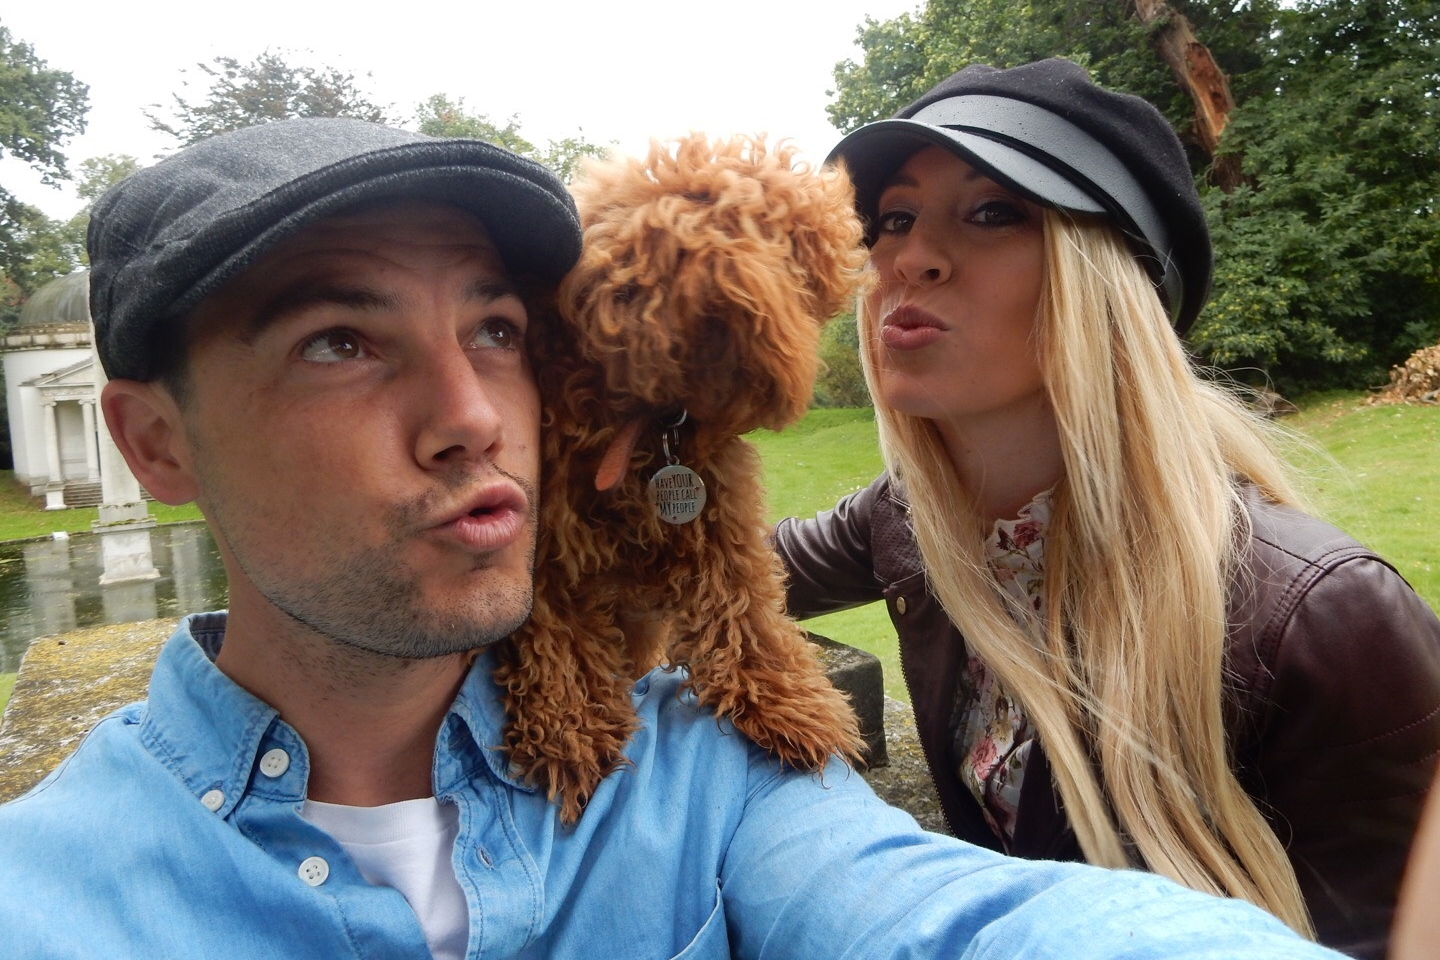 Finders of the Treasure! - Lexie, Luke and their dog Bali at the final destination of the treasure hunt in September 2017 - Lilly's Tomb at Chiswick House Gardens. They are now enjoying their tennis lessons courtesy of Will-to-Win.